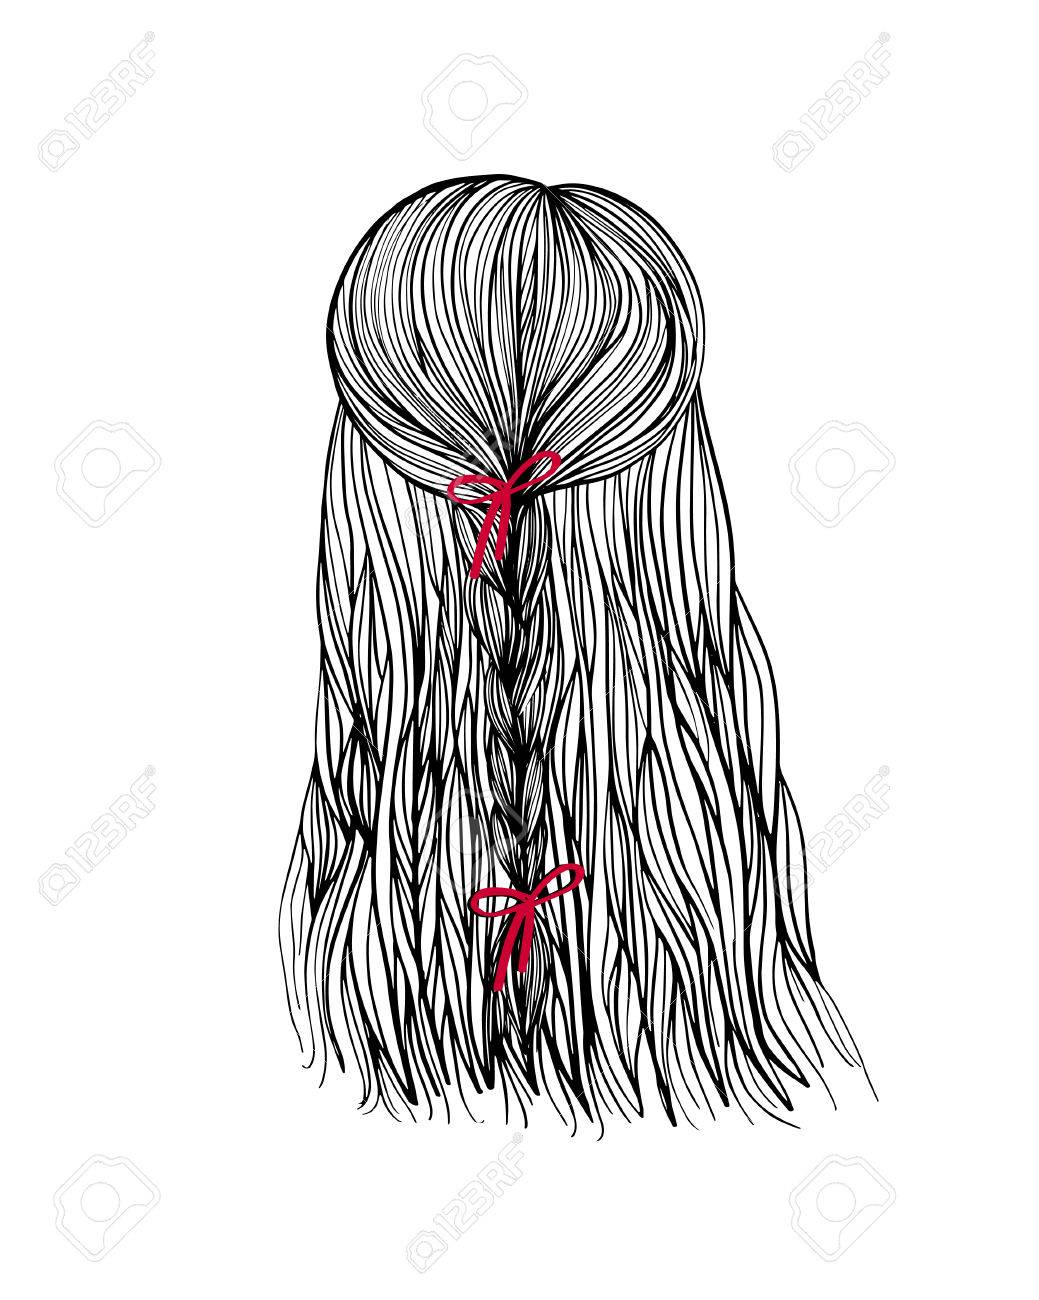 Woman Head Back View With Bride Hair And Red Boe Hand Drawn